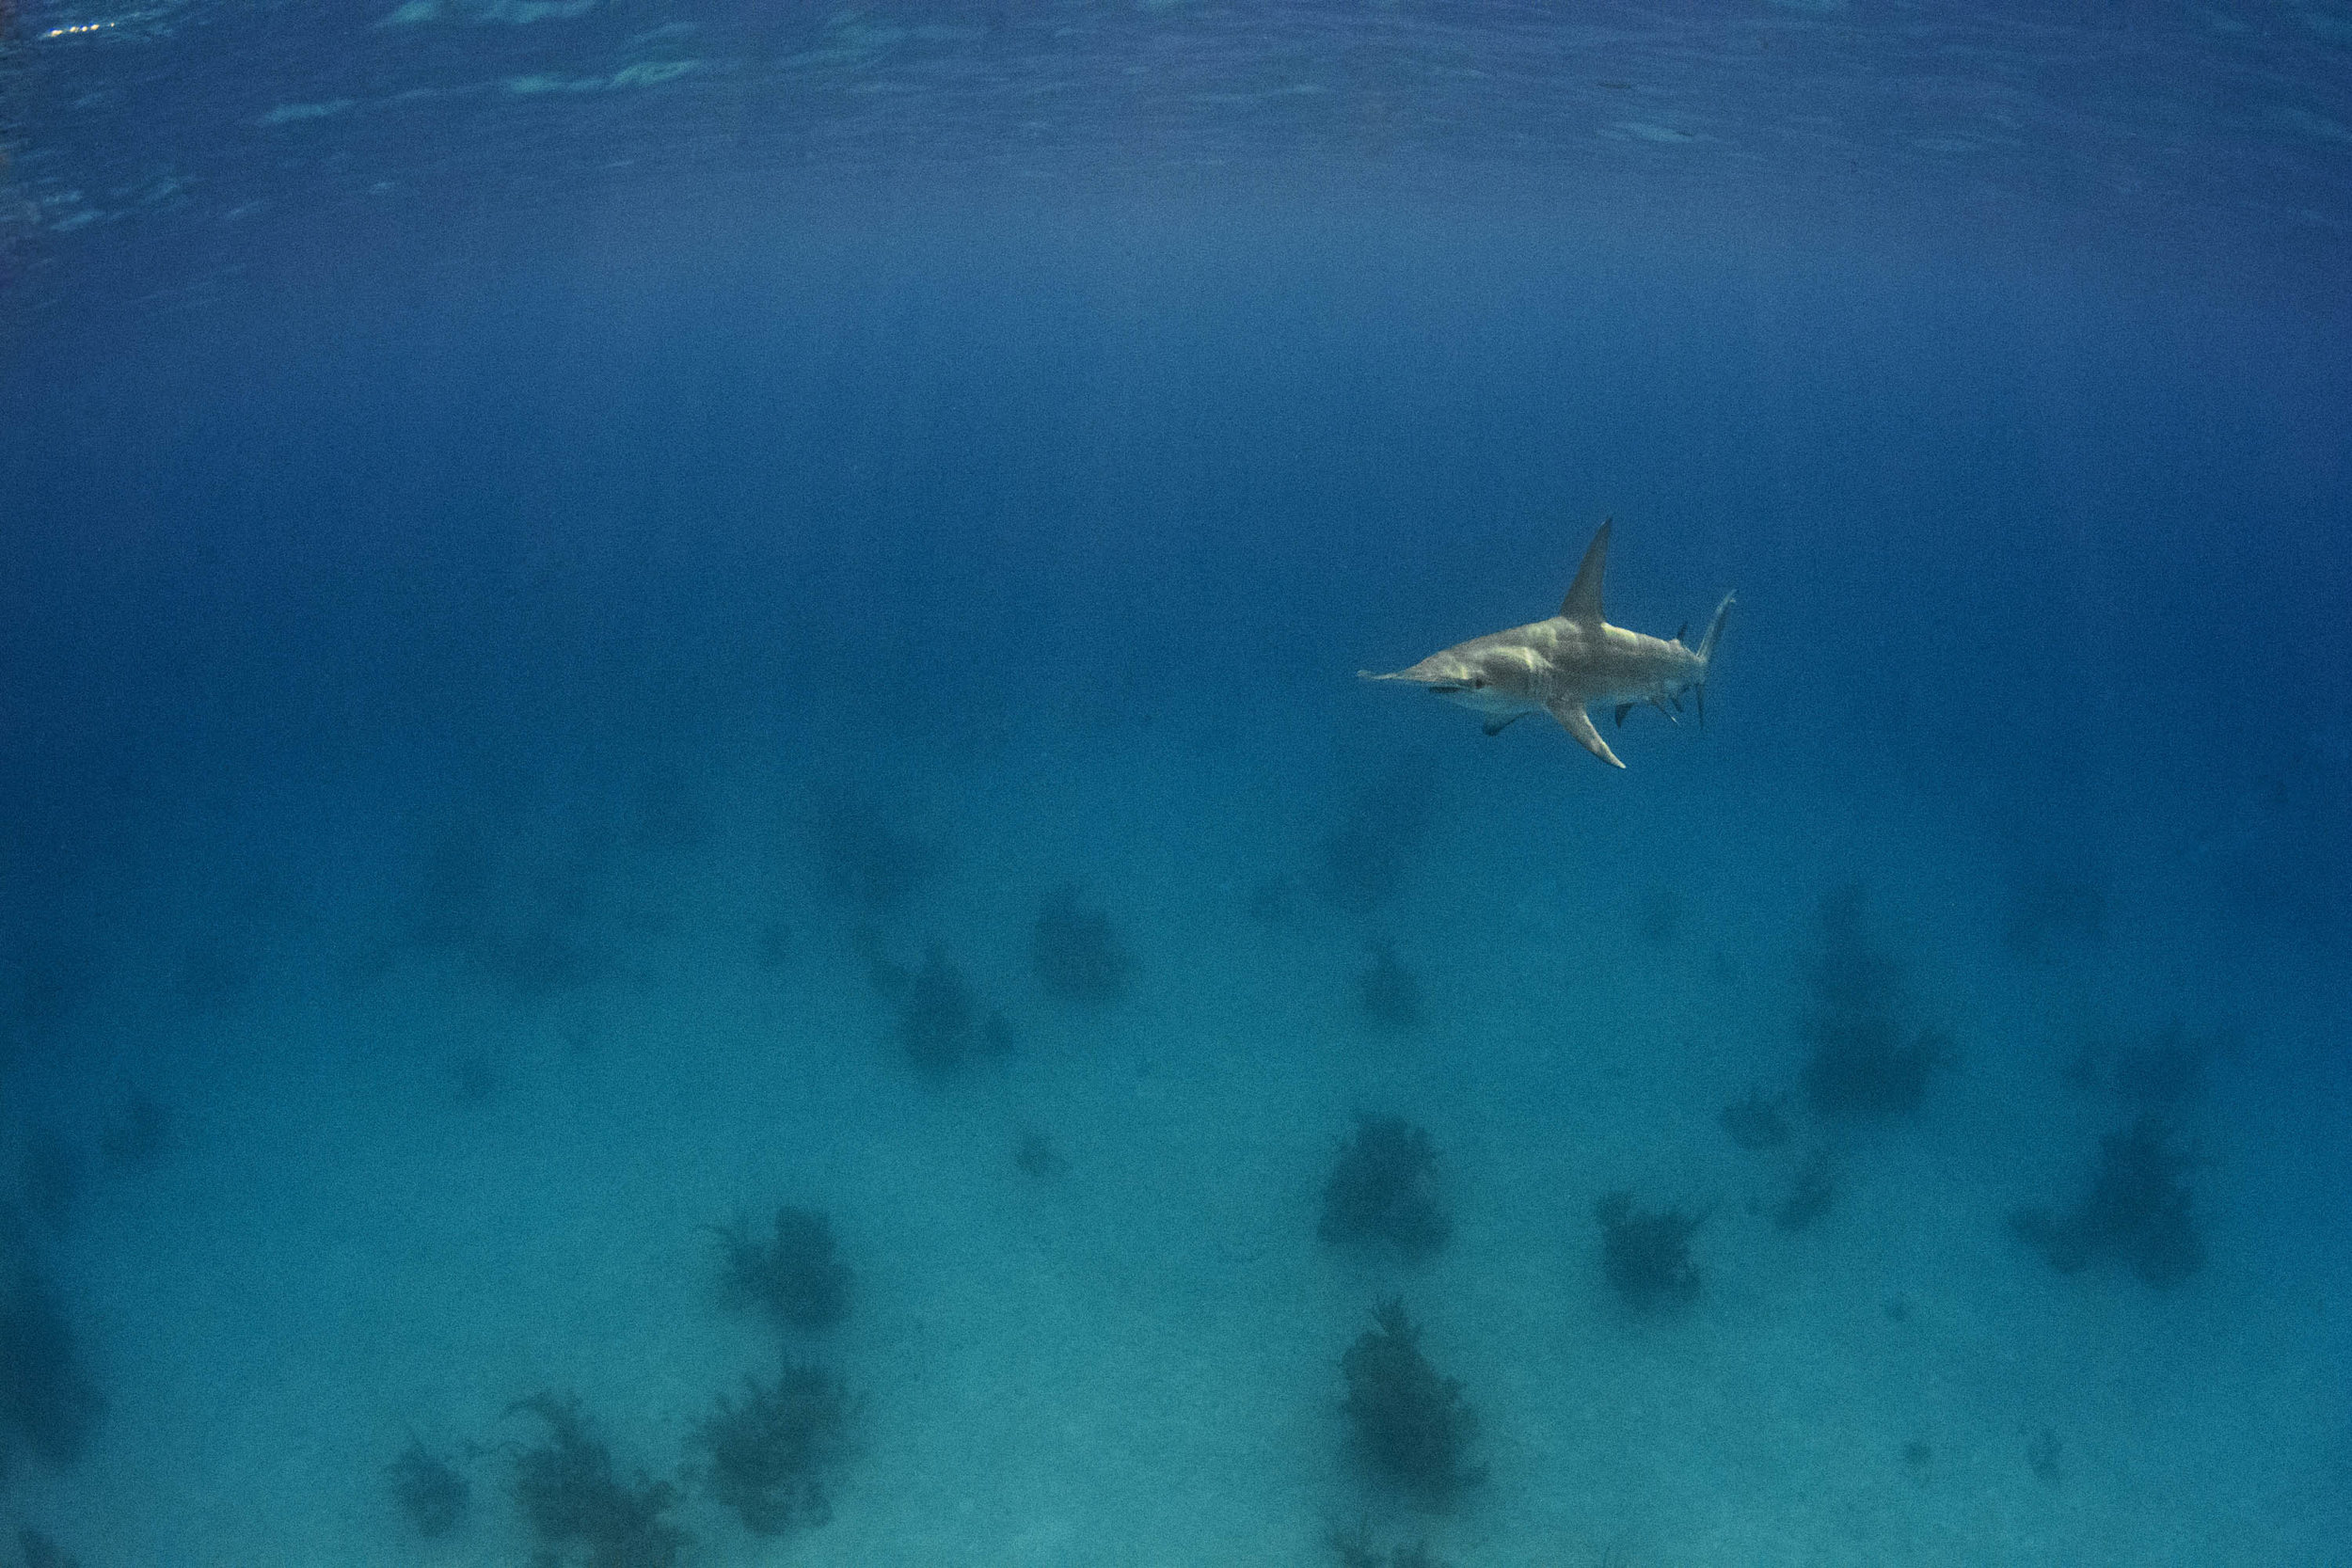 A male Great Hammerhead launches to the surface to view divers